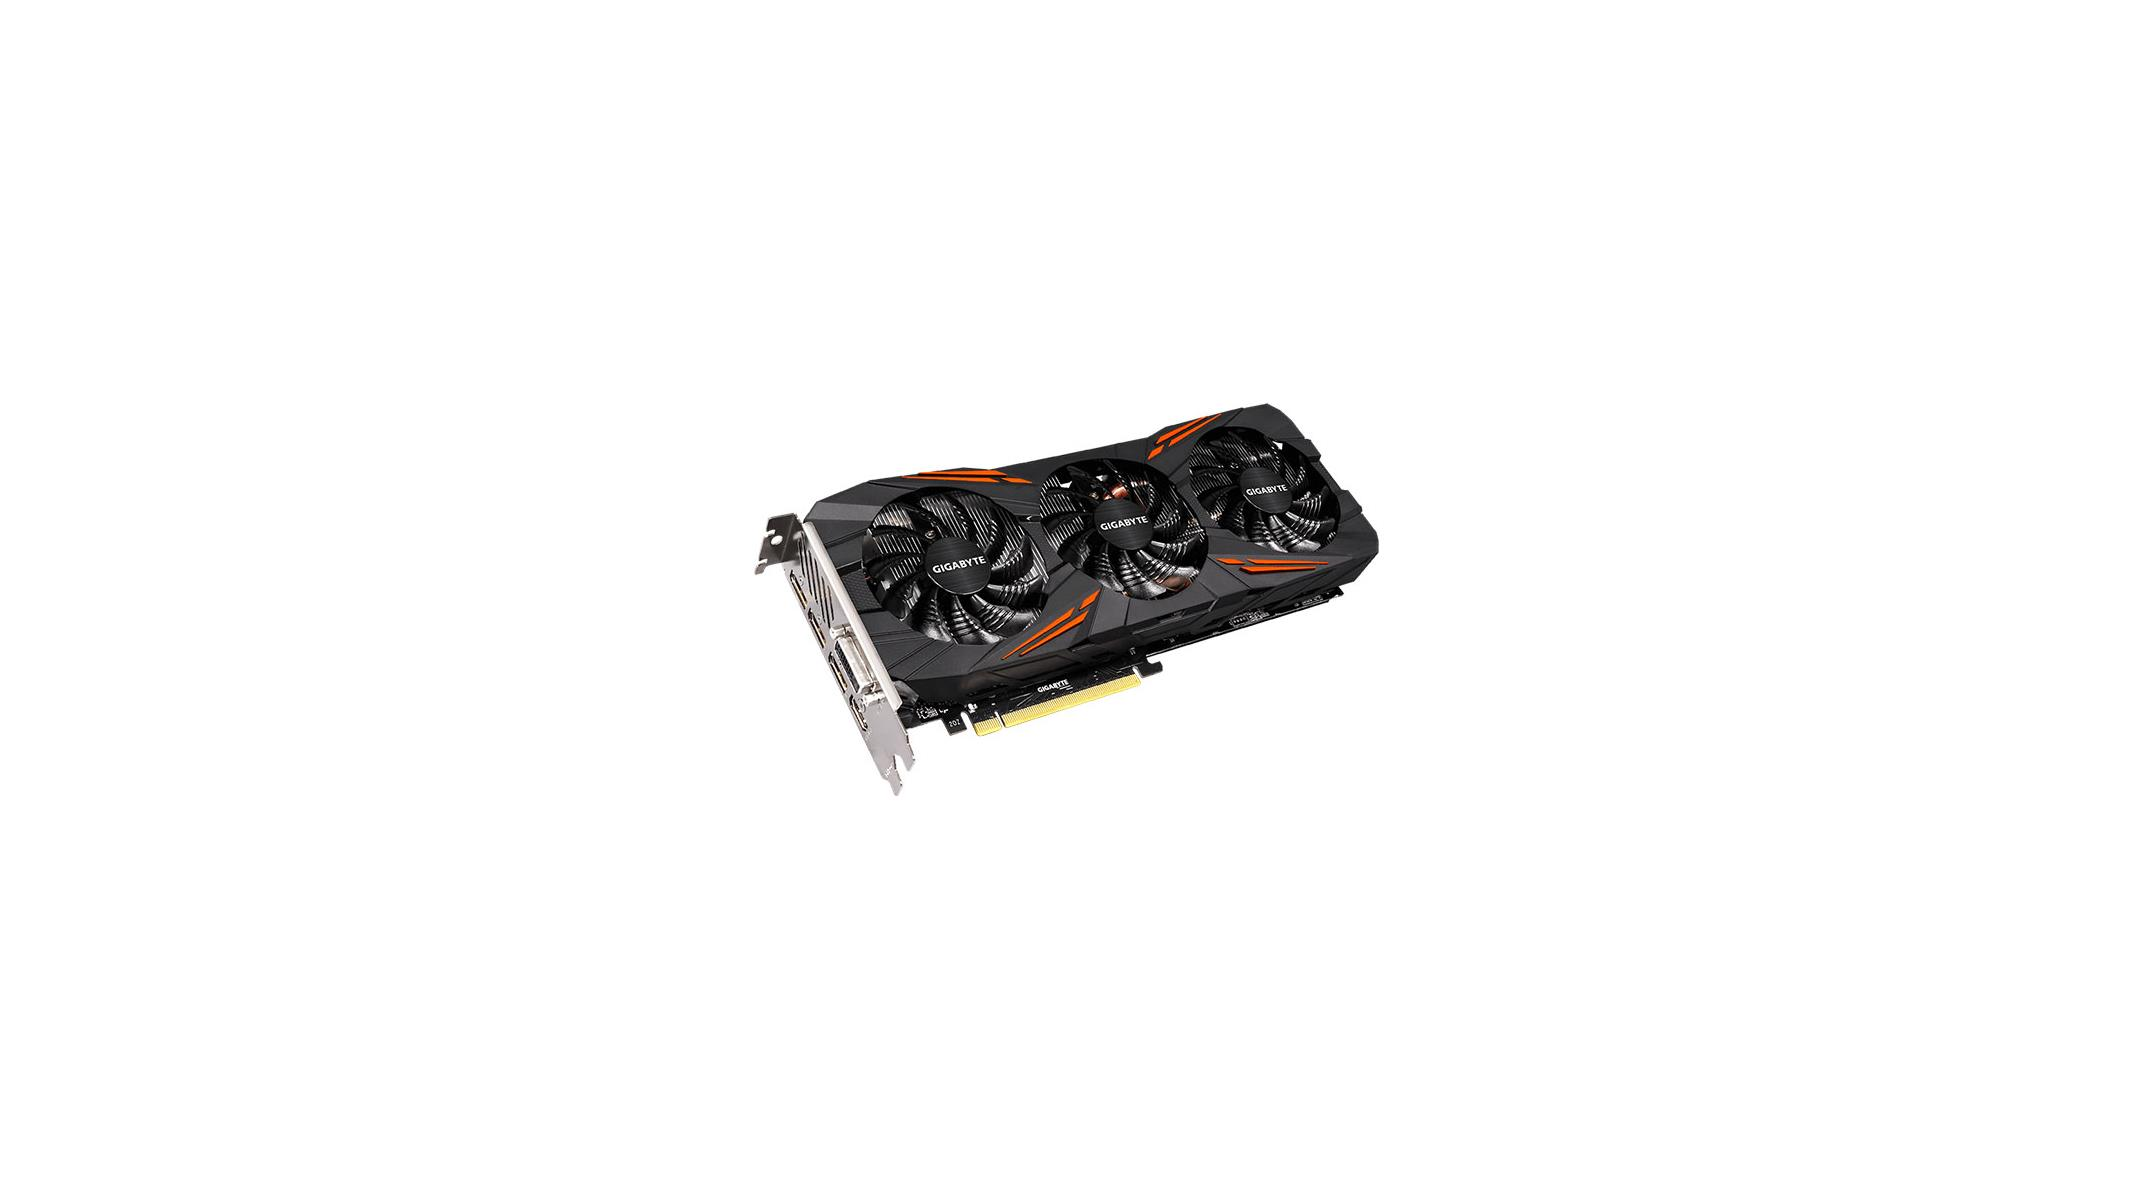 Gigabyte Steps Up With GDDR5X-Strapped GeForce GTX 1060 G1 Gaming D5X 6G Graphics Card